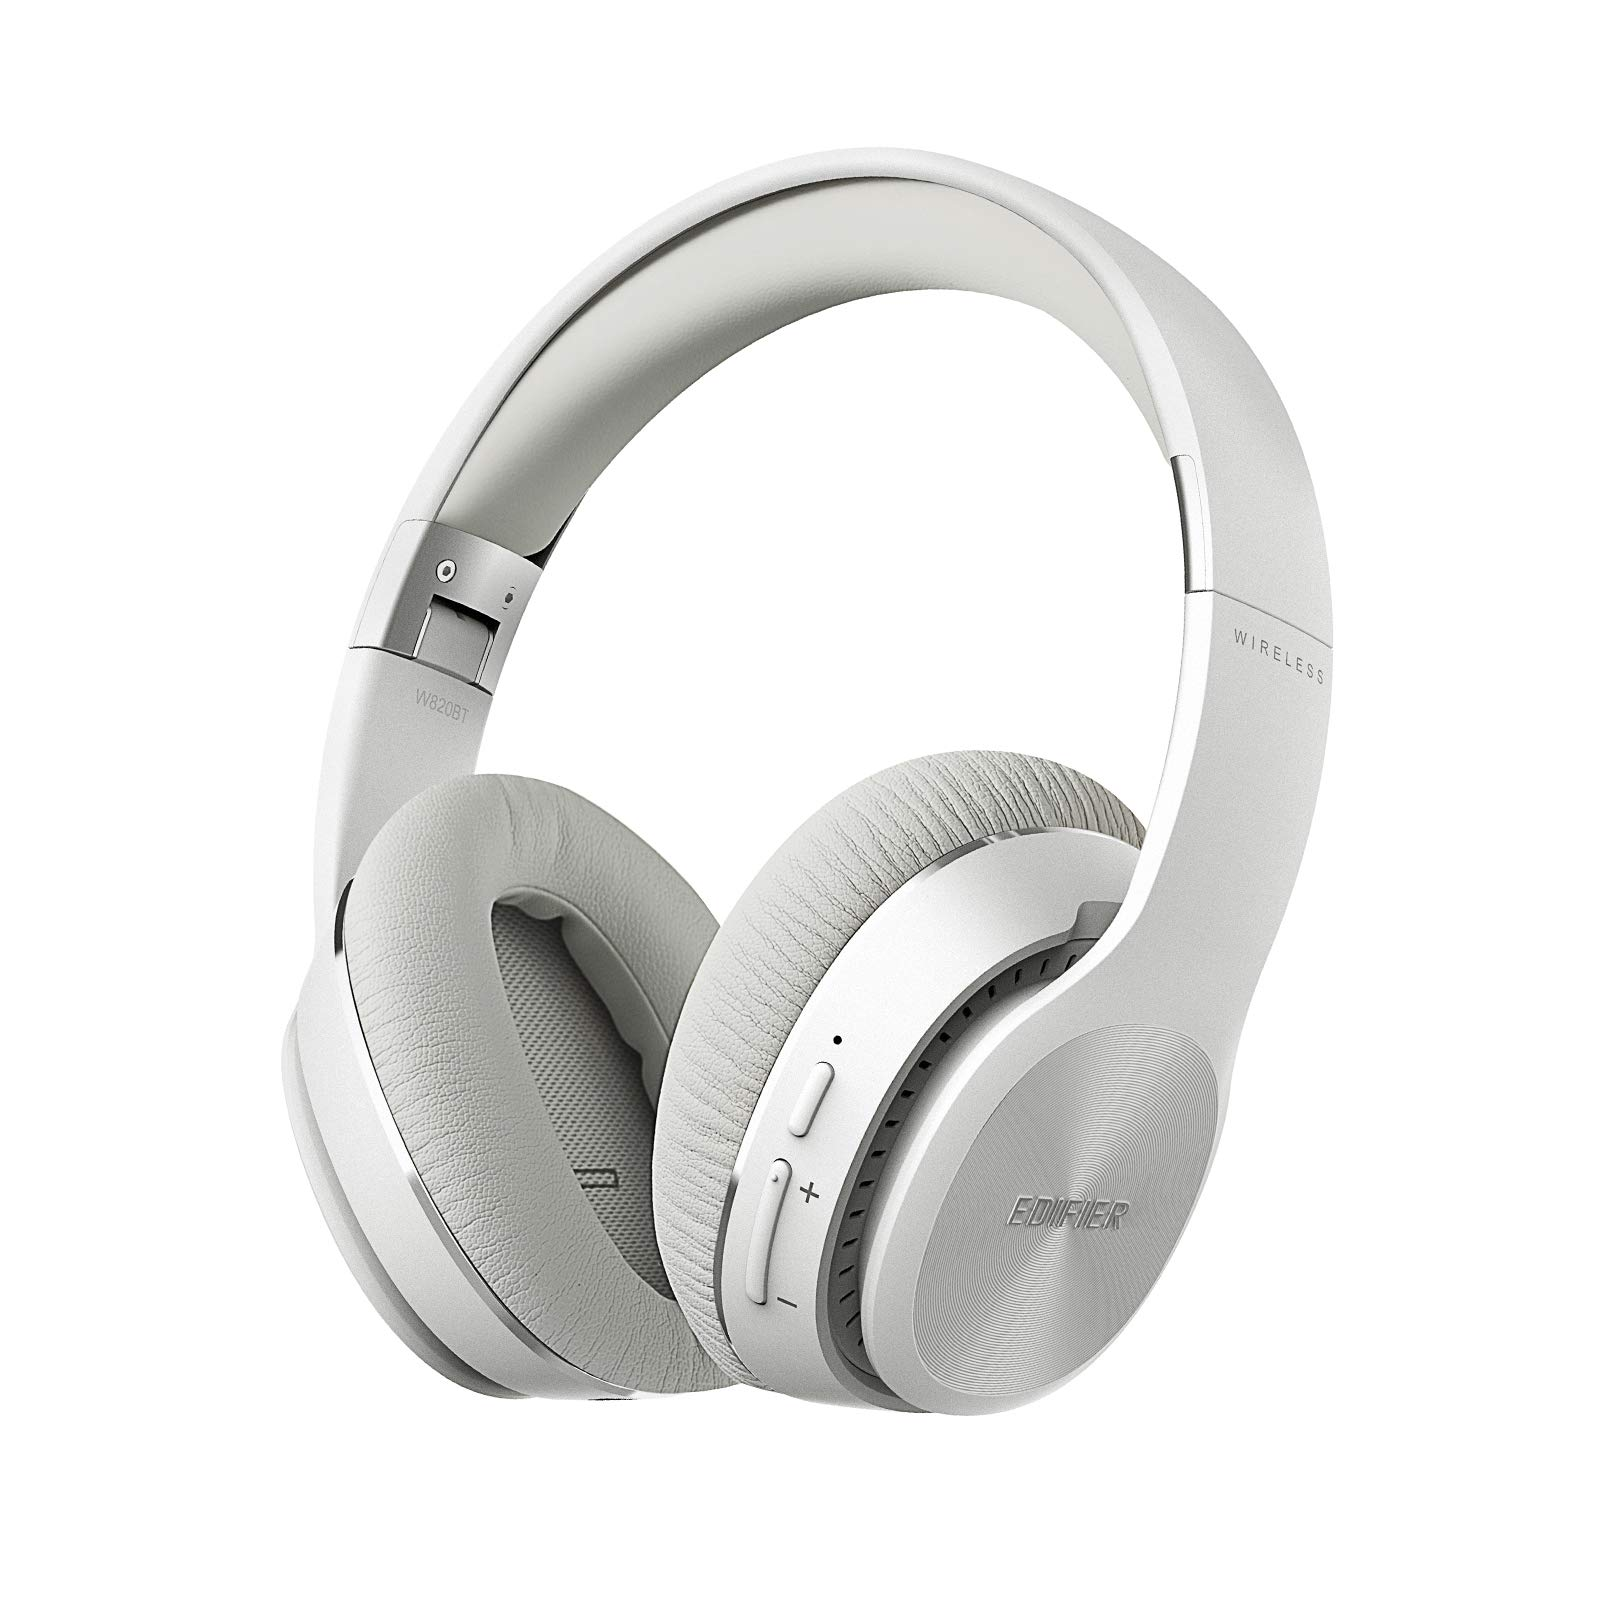 Edifier W820BT Bluetooth Headphones - Foldable Wireless Headphone with 80-Hour Long Battery Life - White